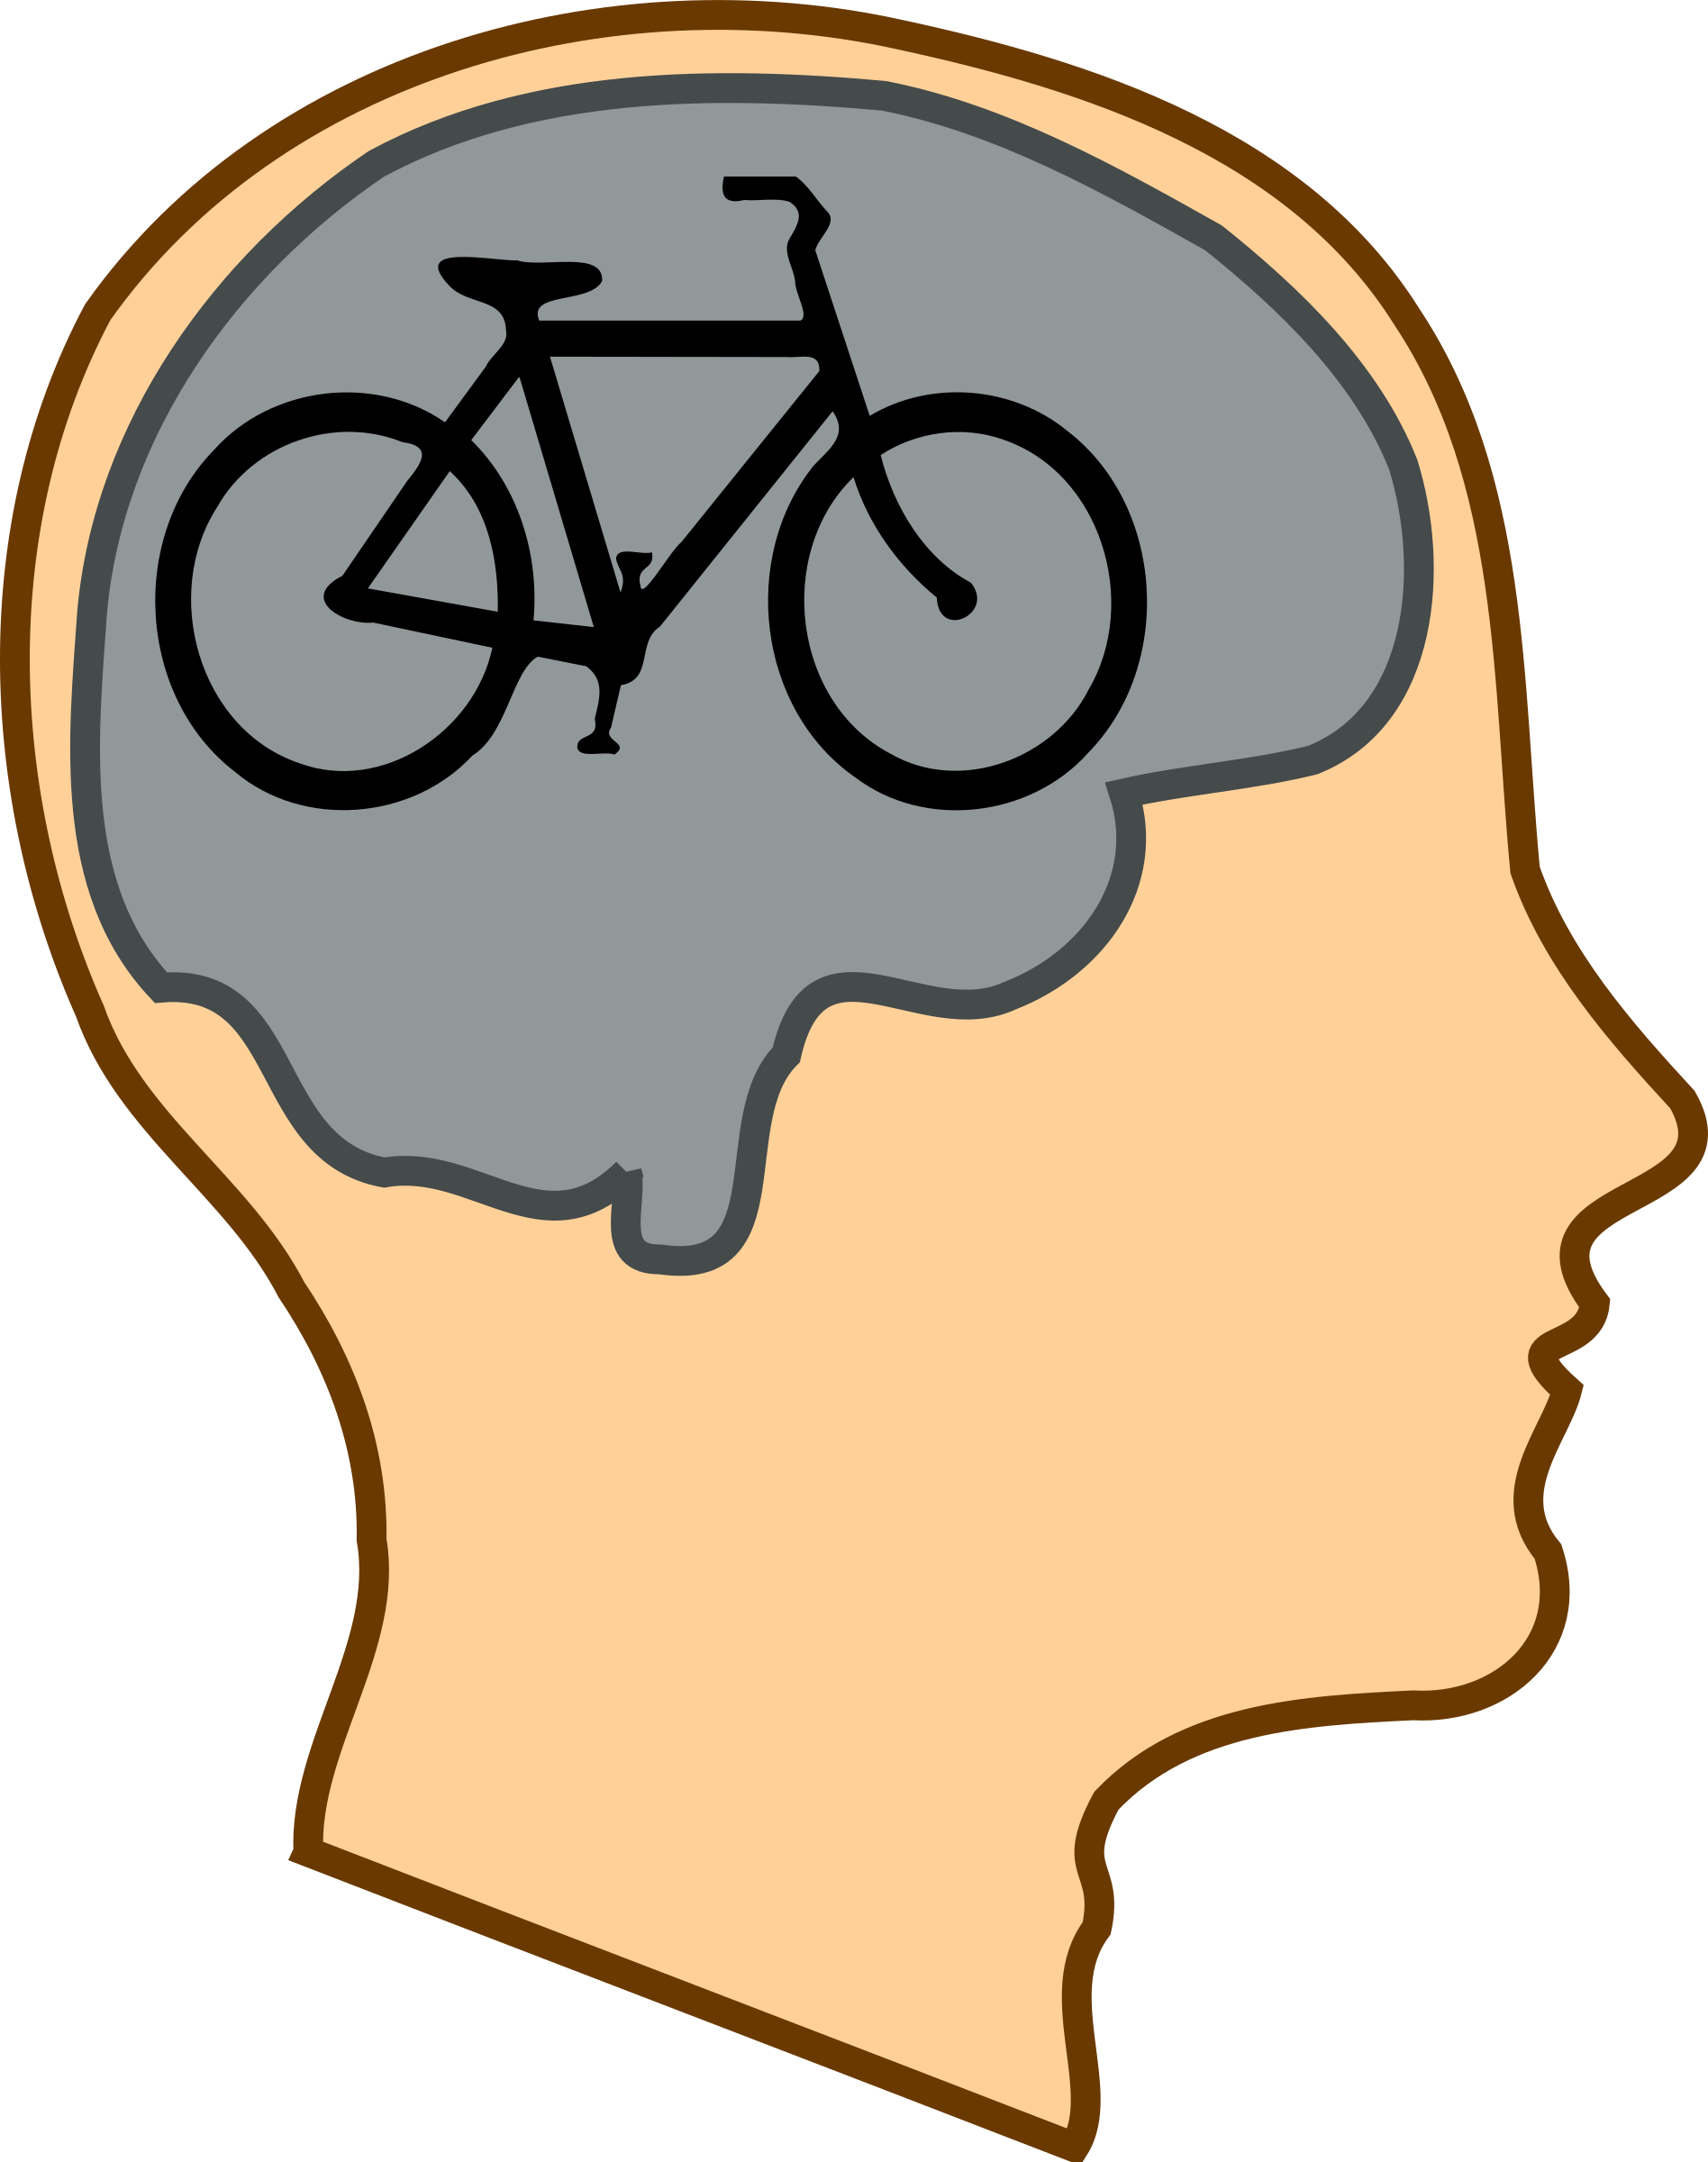 Mind clipart healthy mind Our Clipart Minds Bicycle For